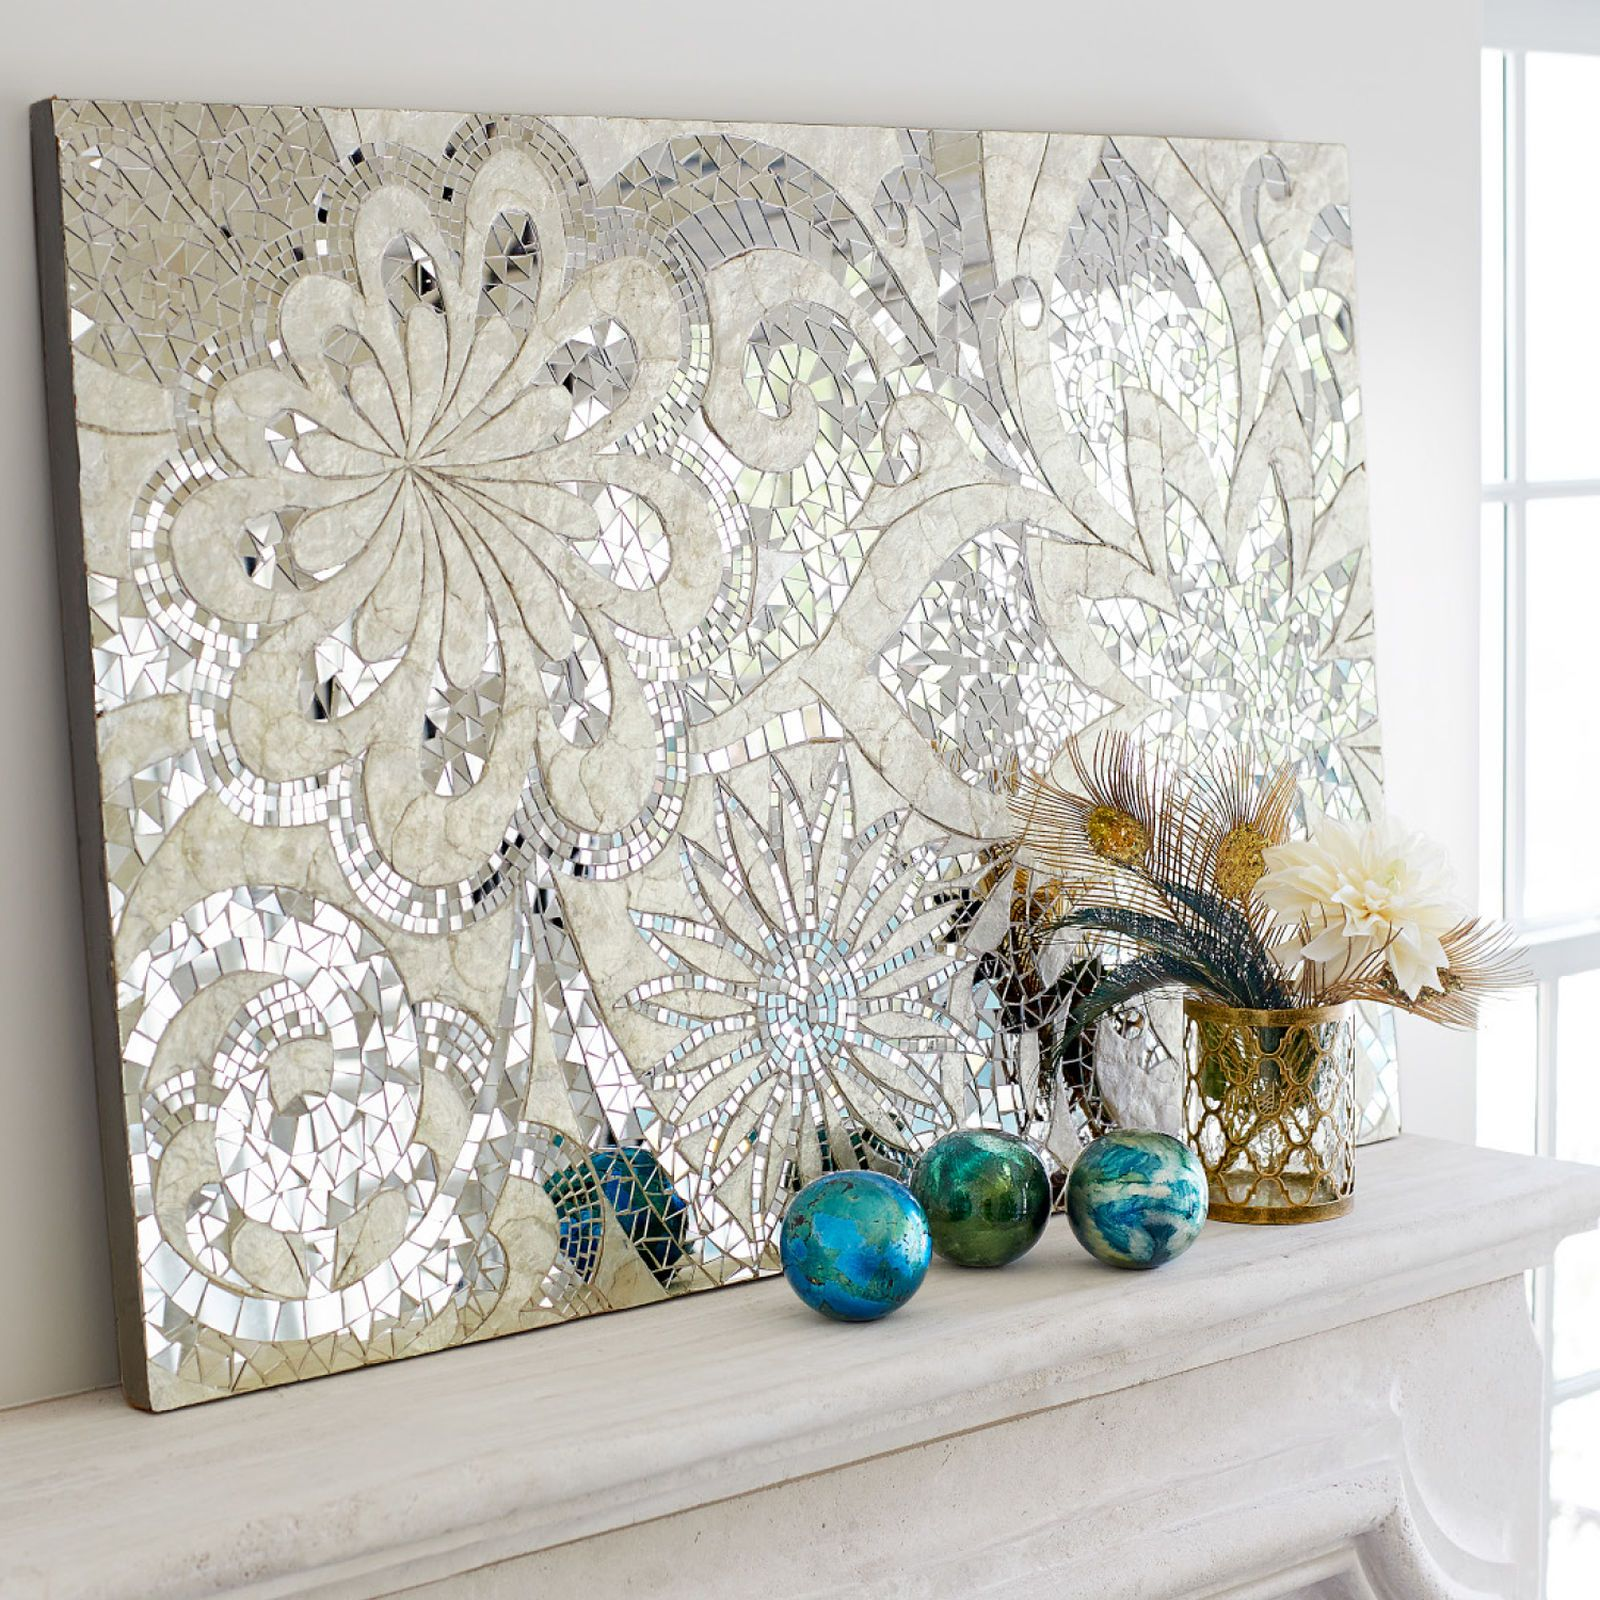 Handcrafted In Indonesia Where Capiz Shell Is Plentiful Our Dare We Say Dazzling Wall Panel A Glittering Fl Mosaic Of Mirror Tiles And Shimmering